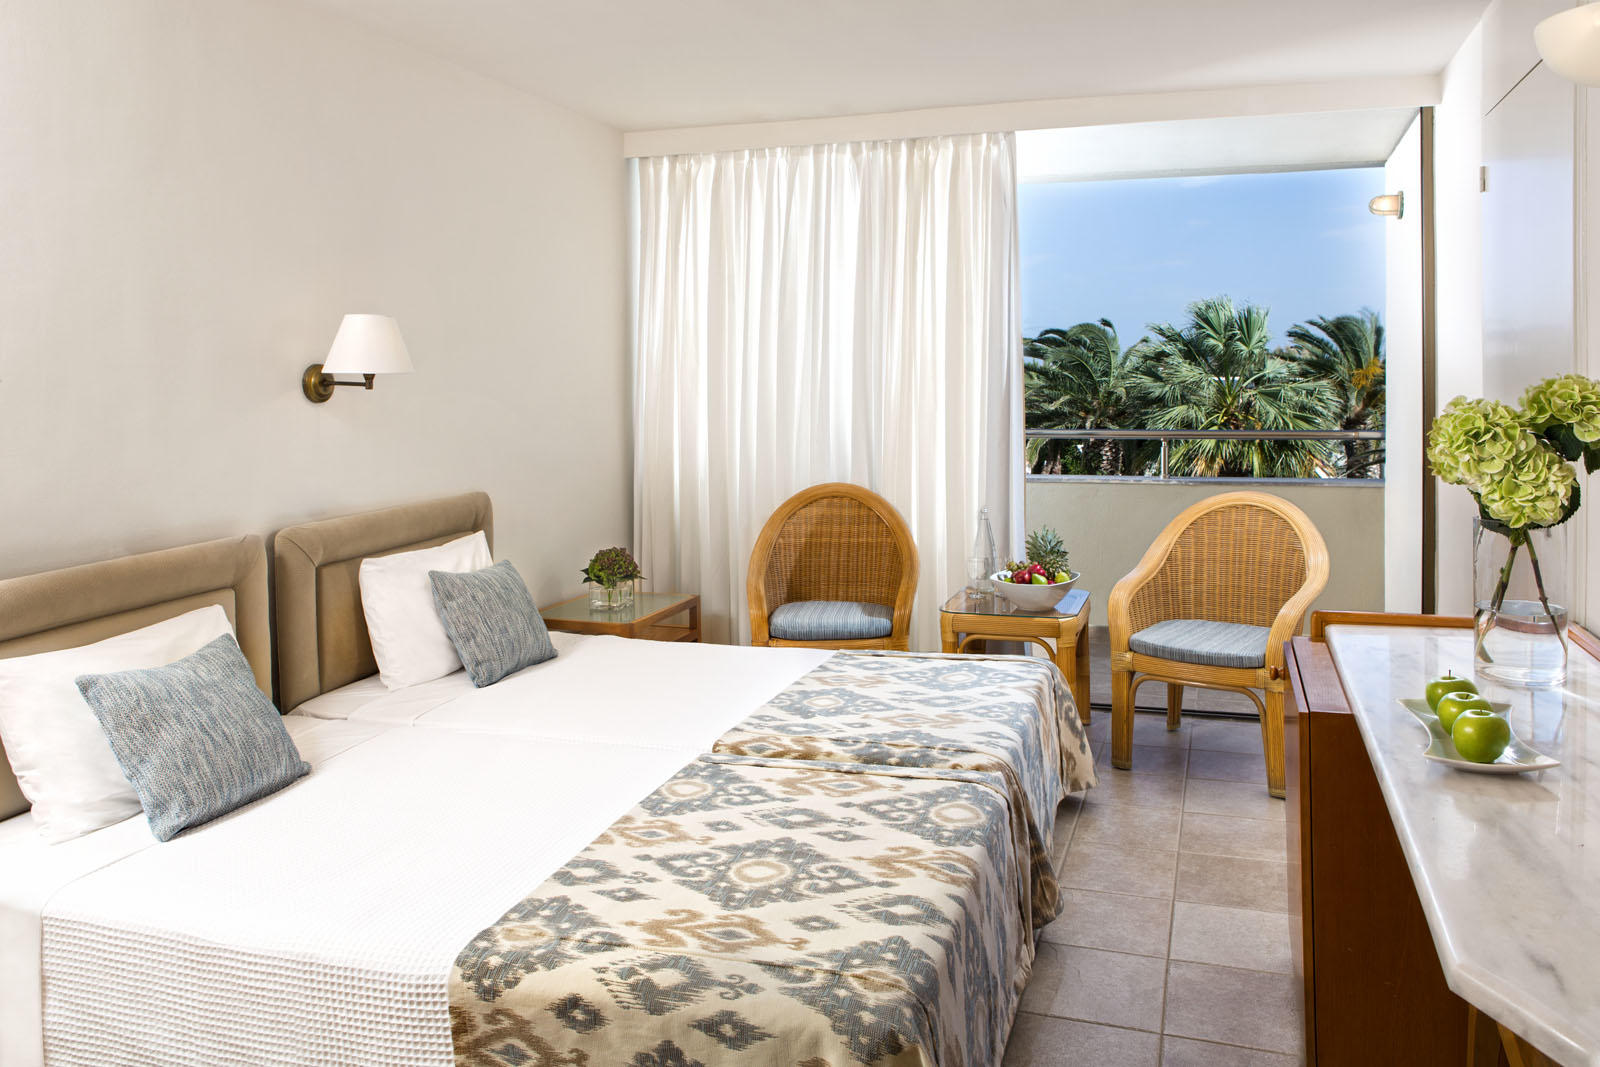 Double room at Agapi Beach Resort in Crete